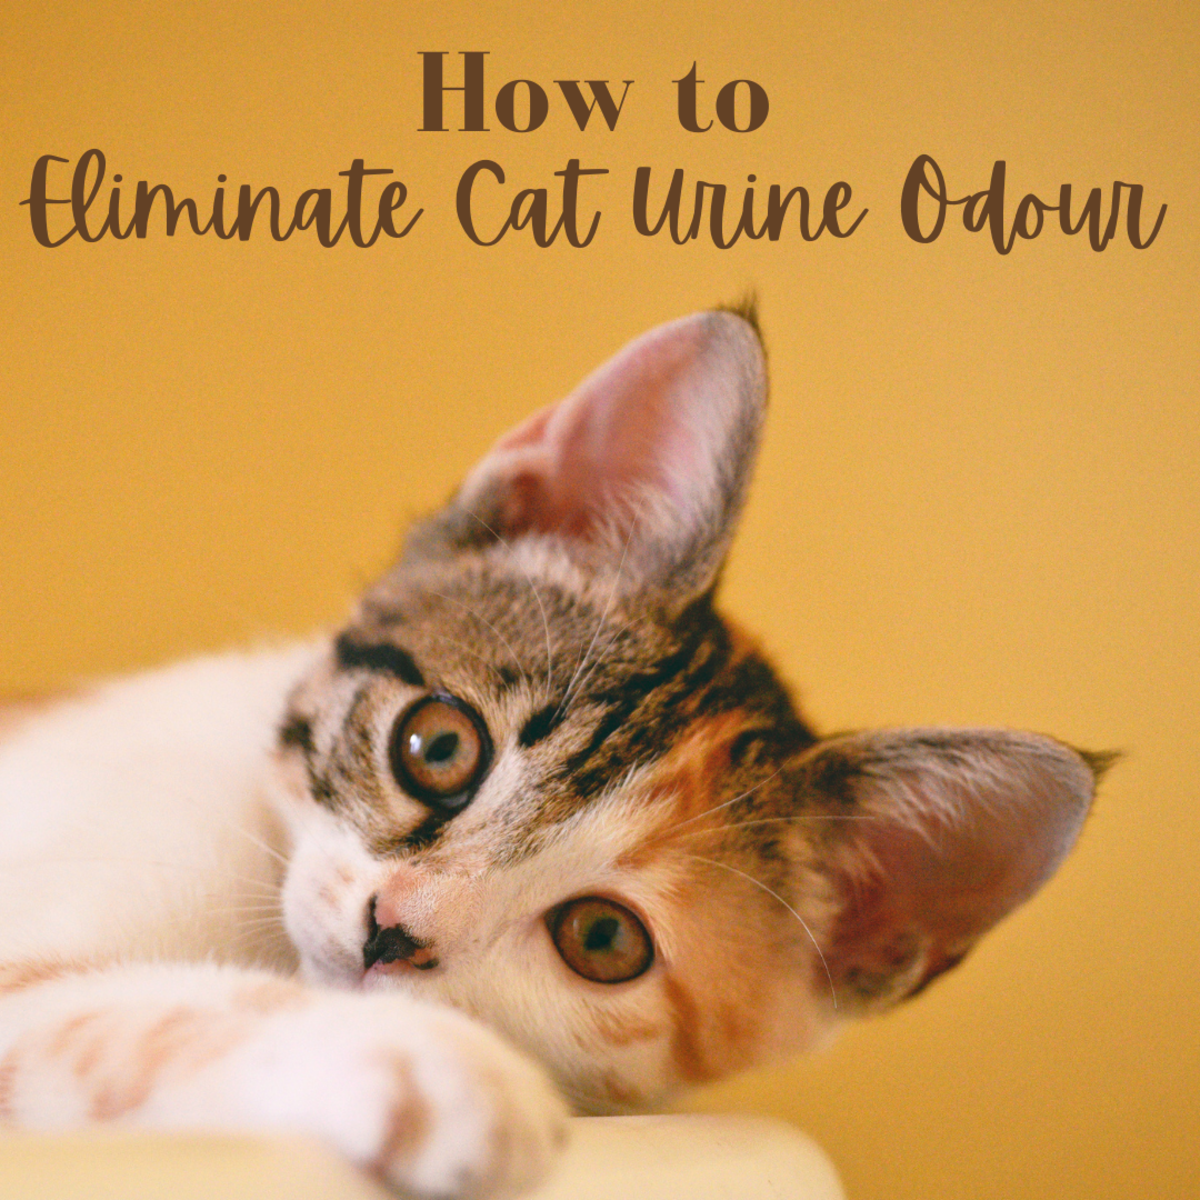 The smell of cat urine is very unpleasant; here's how you can eliminate it.